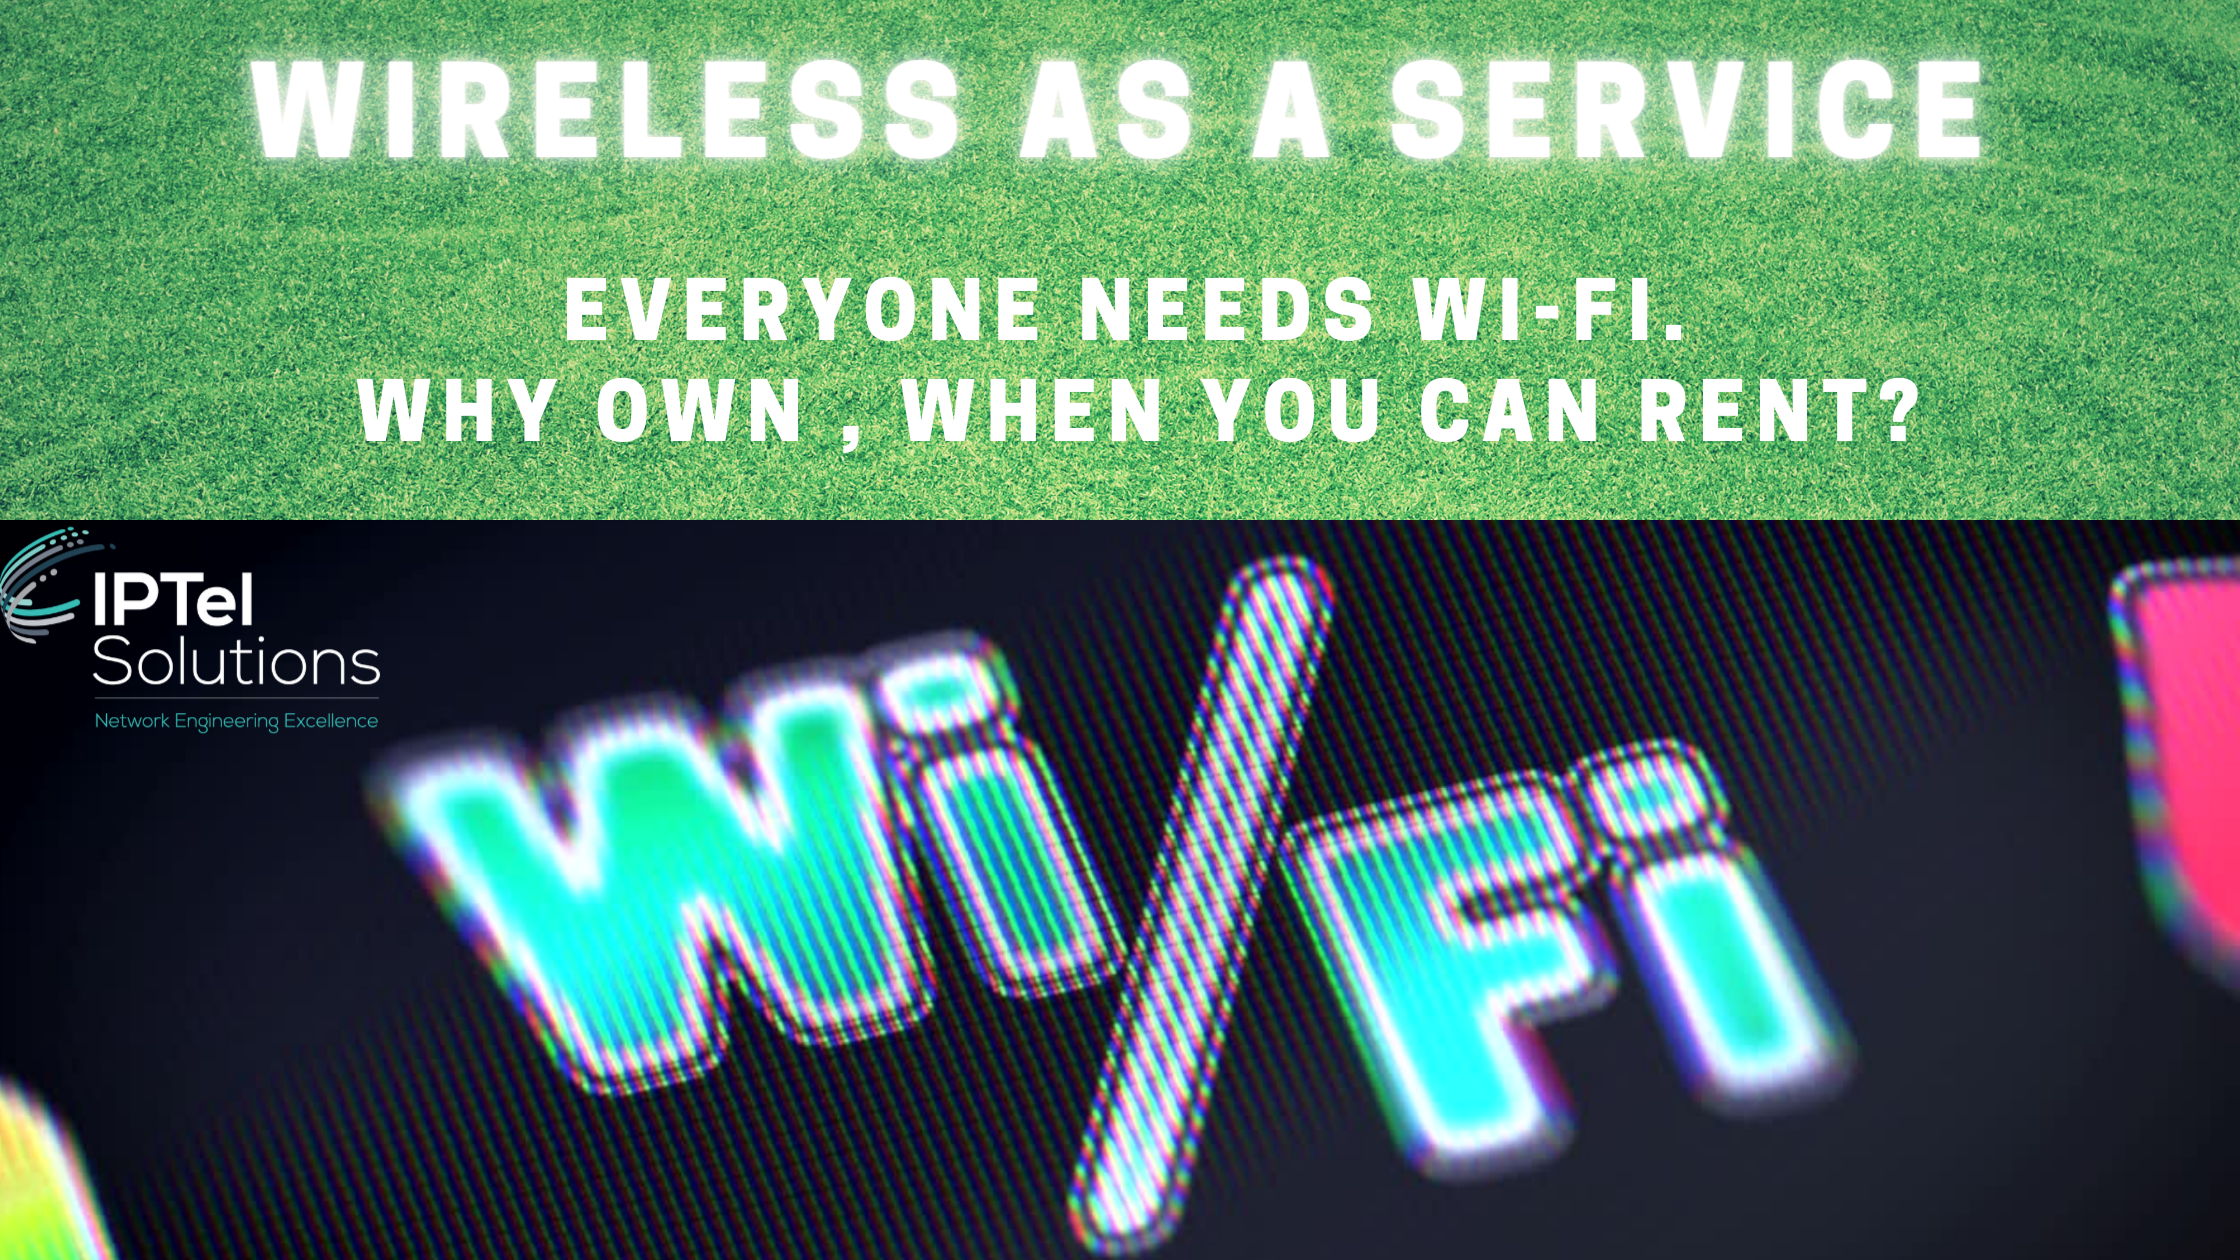 Wireless as a Service